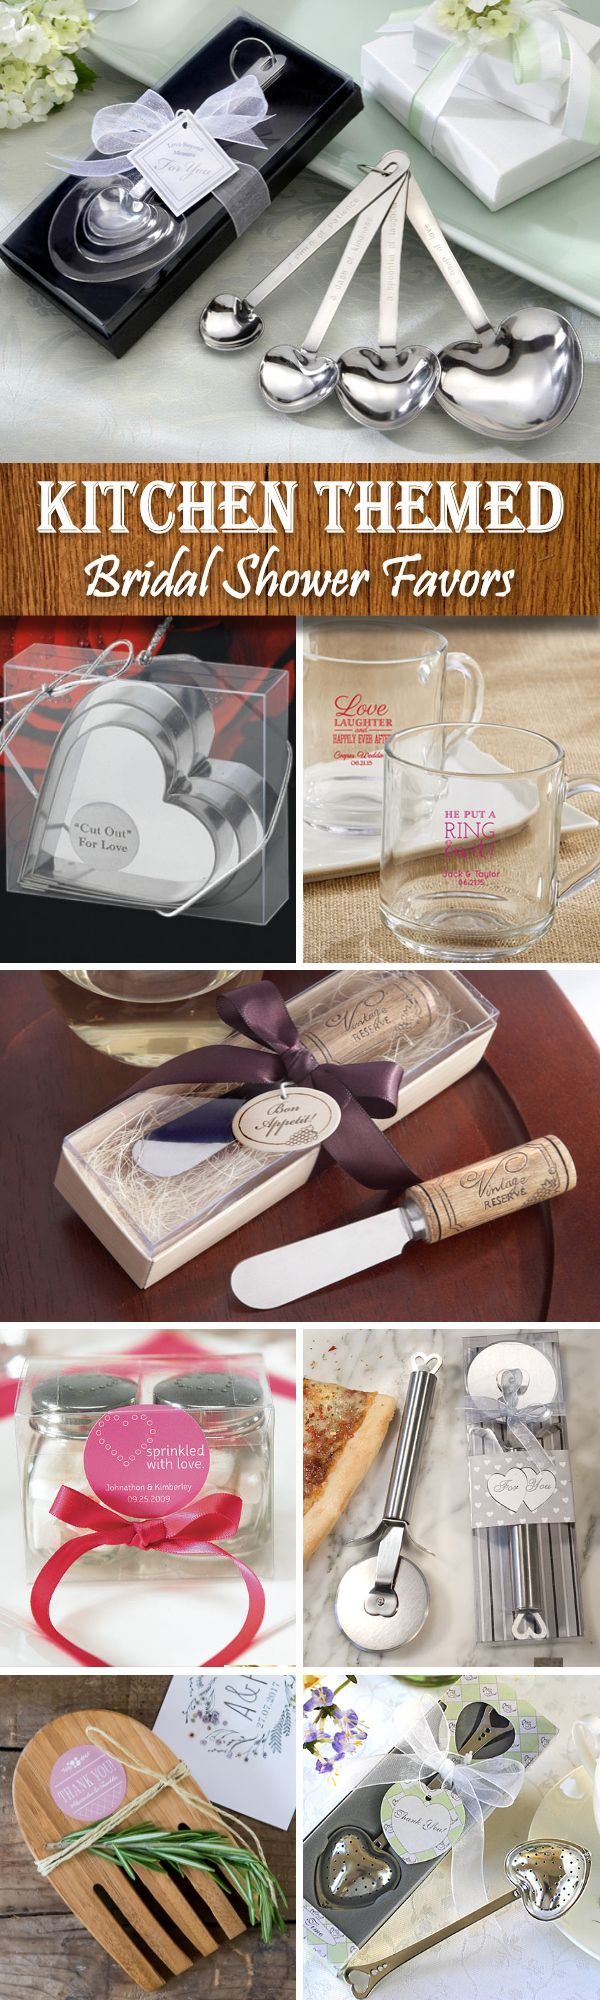 Best 25+ Bridal shower favors ideas on Pinterest | Bridal ...